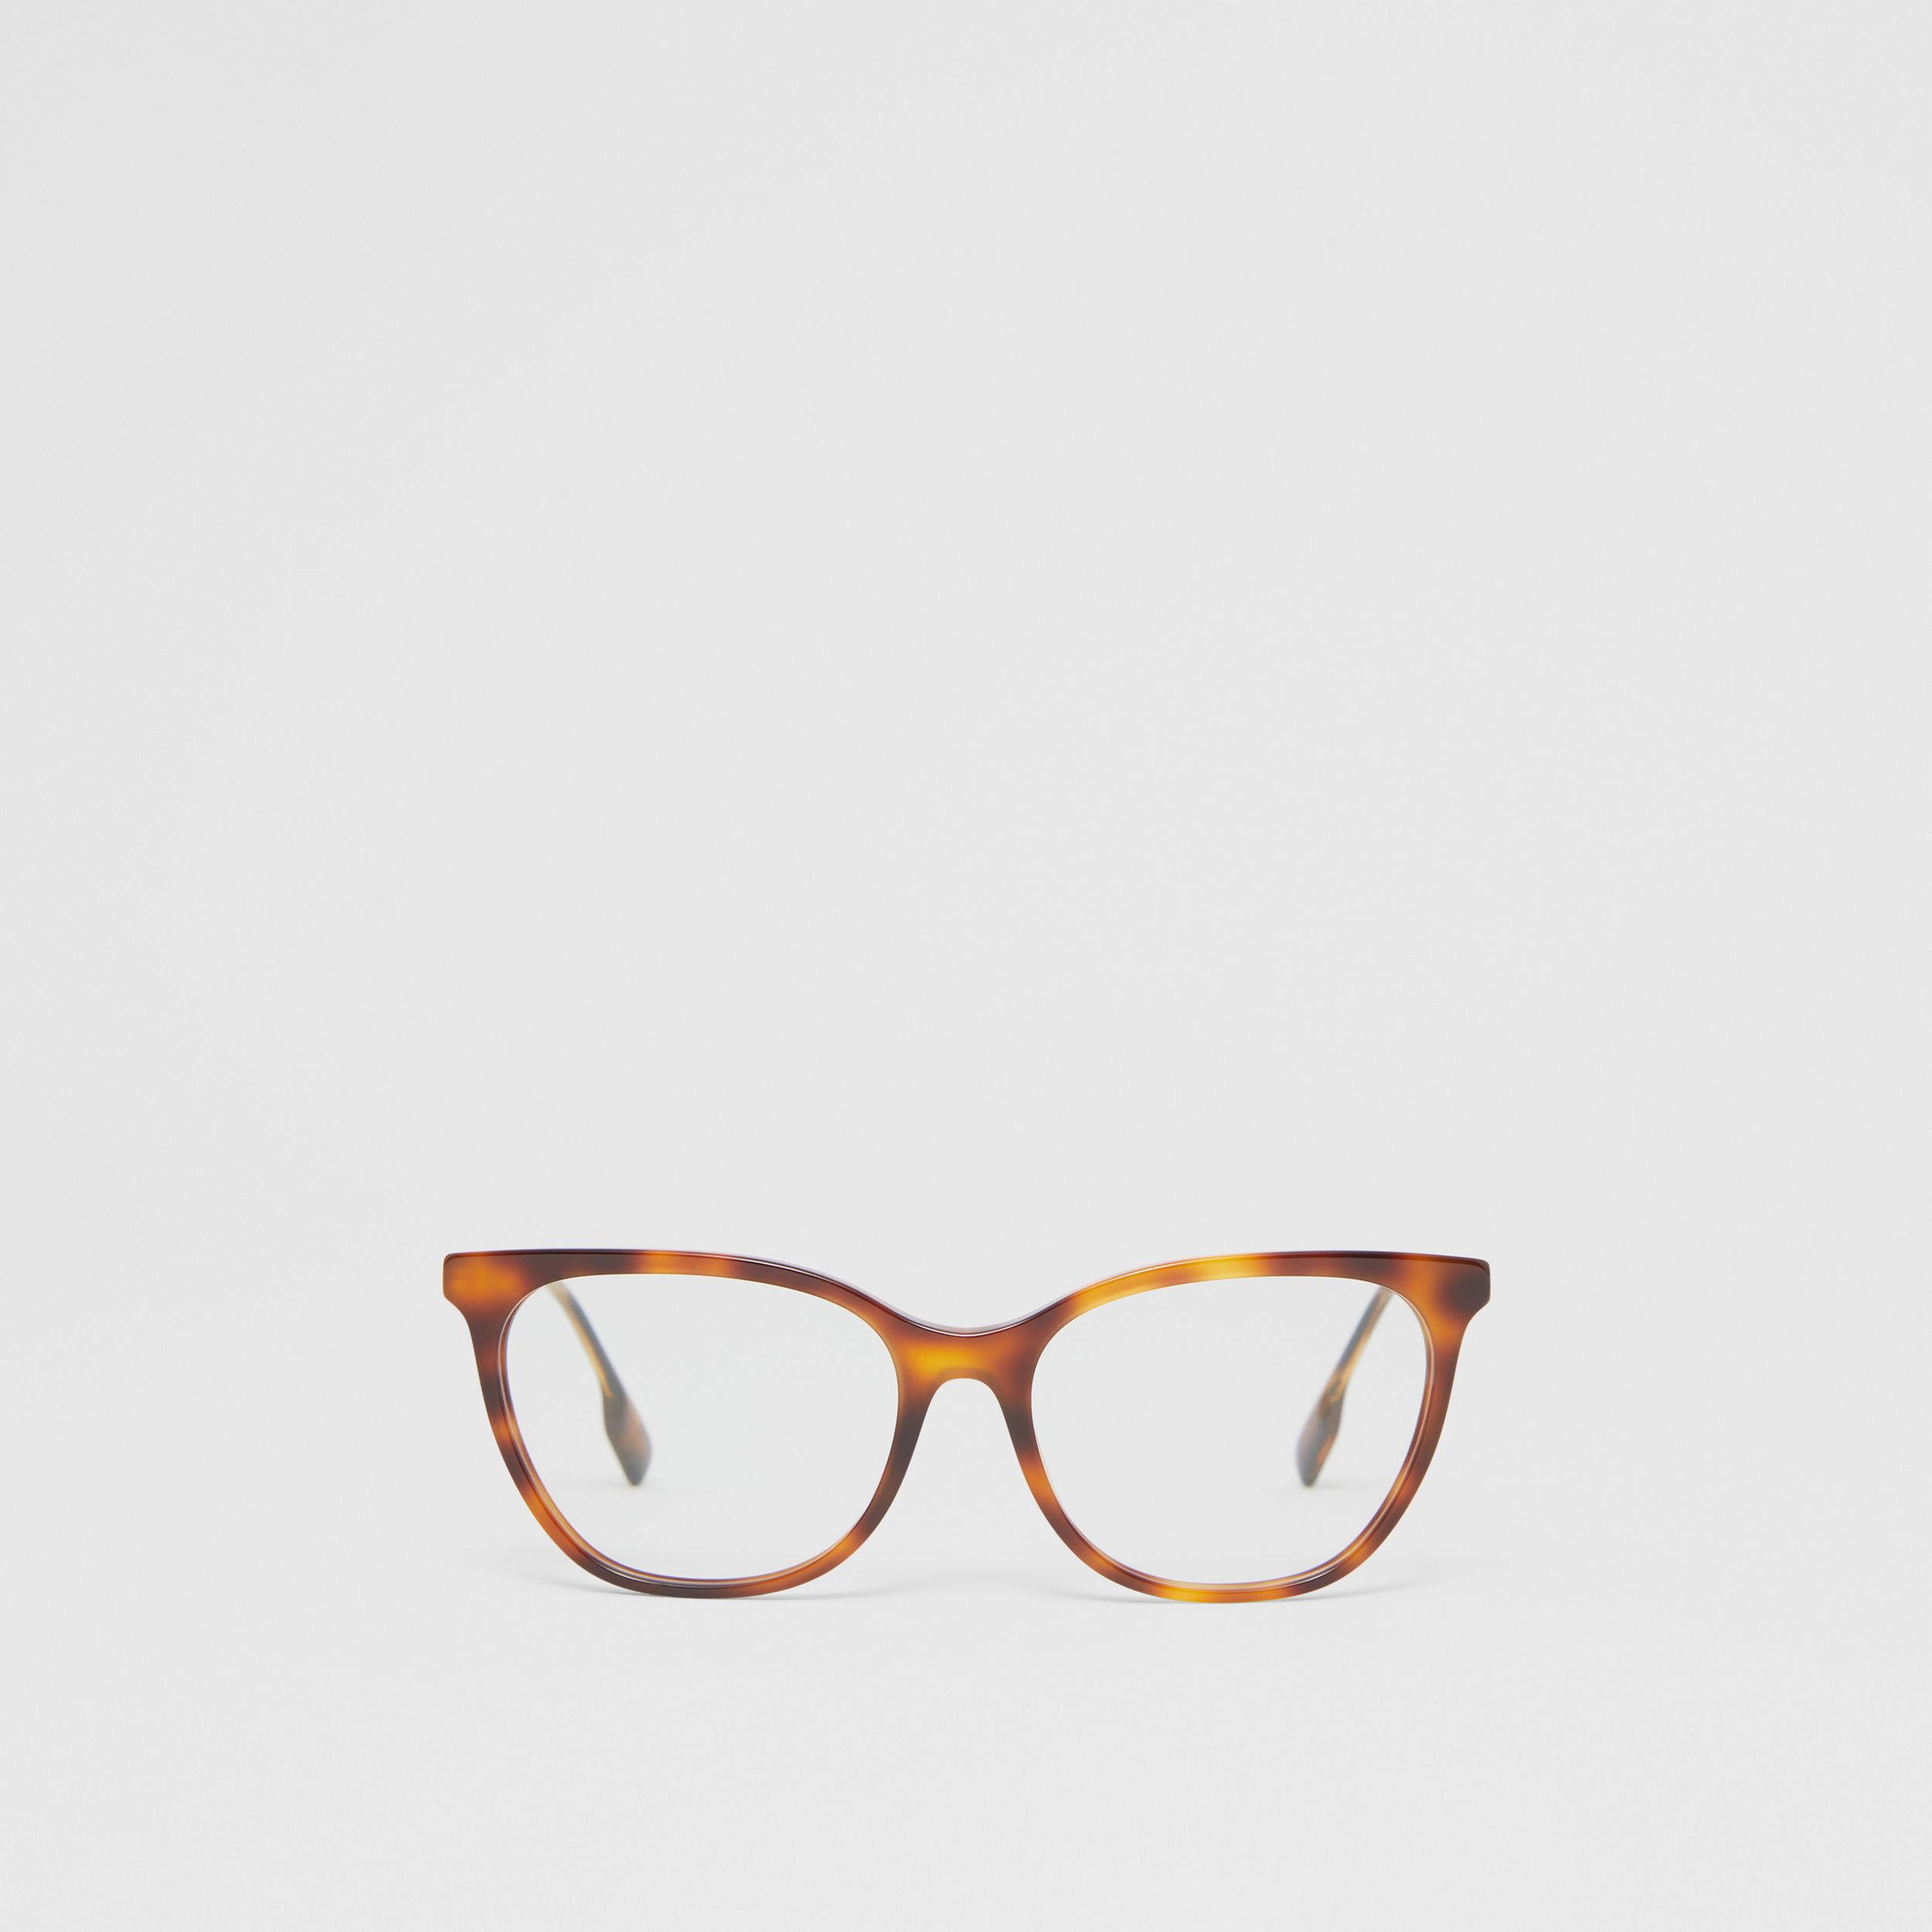 Cat-eye Optical Frames in Dark Amber Tortoiseshell - Women | Burberry - 1